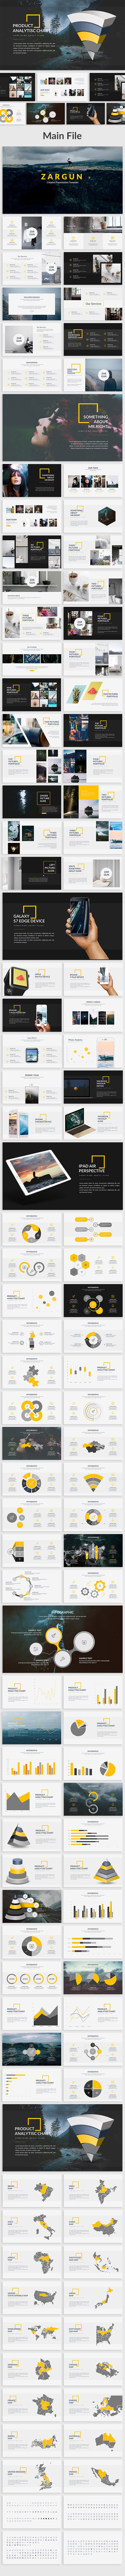 Zargun - Creative Powerpoint Template - Creative #PowerPoint #Templates Download here:  https://graphicriver.net/item/zargun-creative-powerpoint-template/19520153?ref=alena994